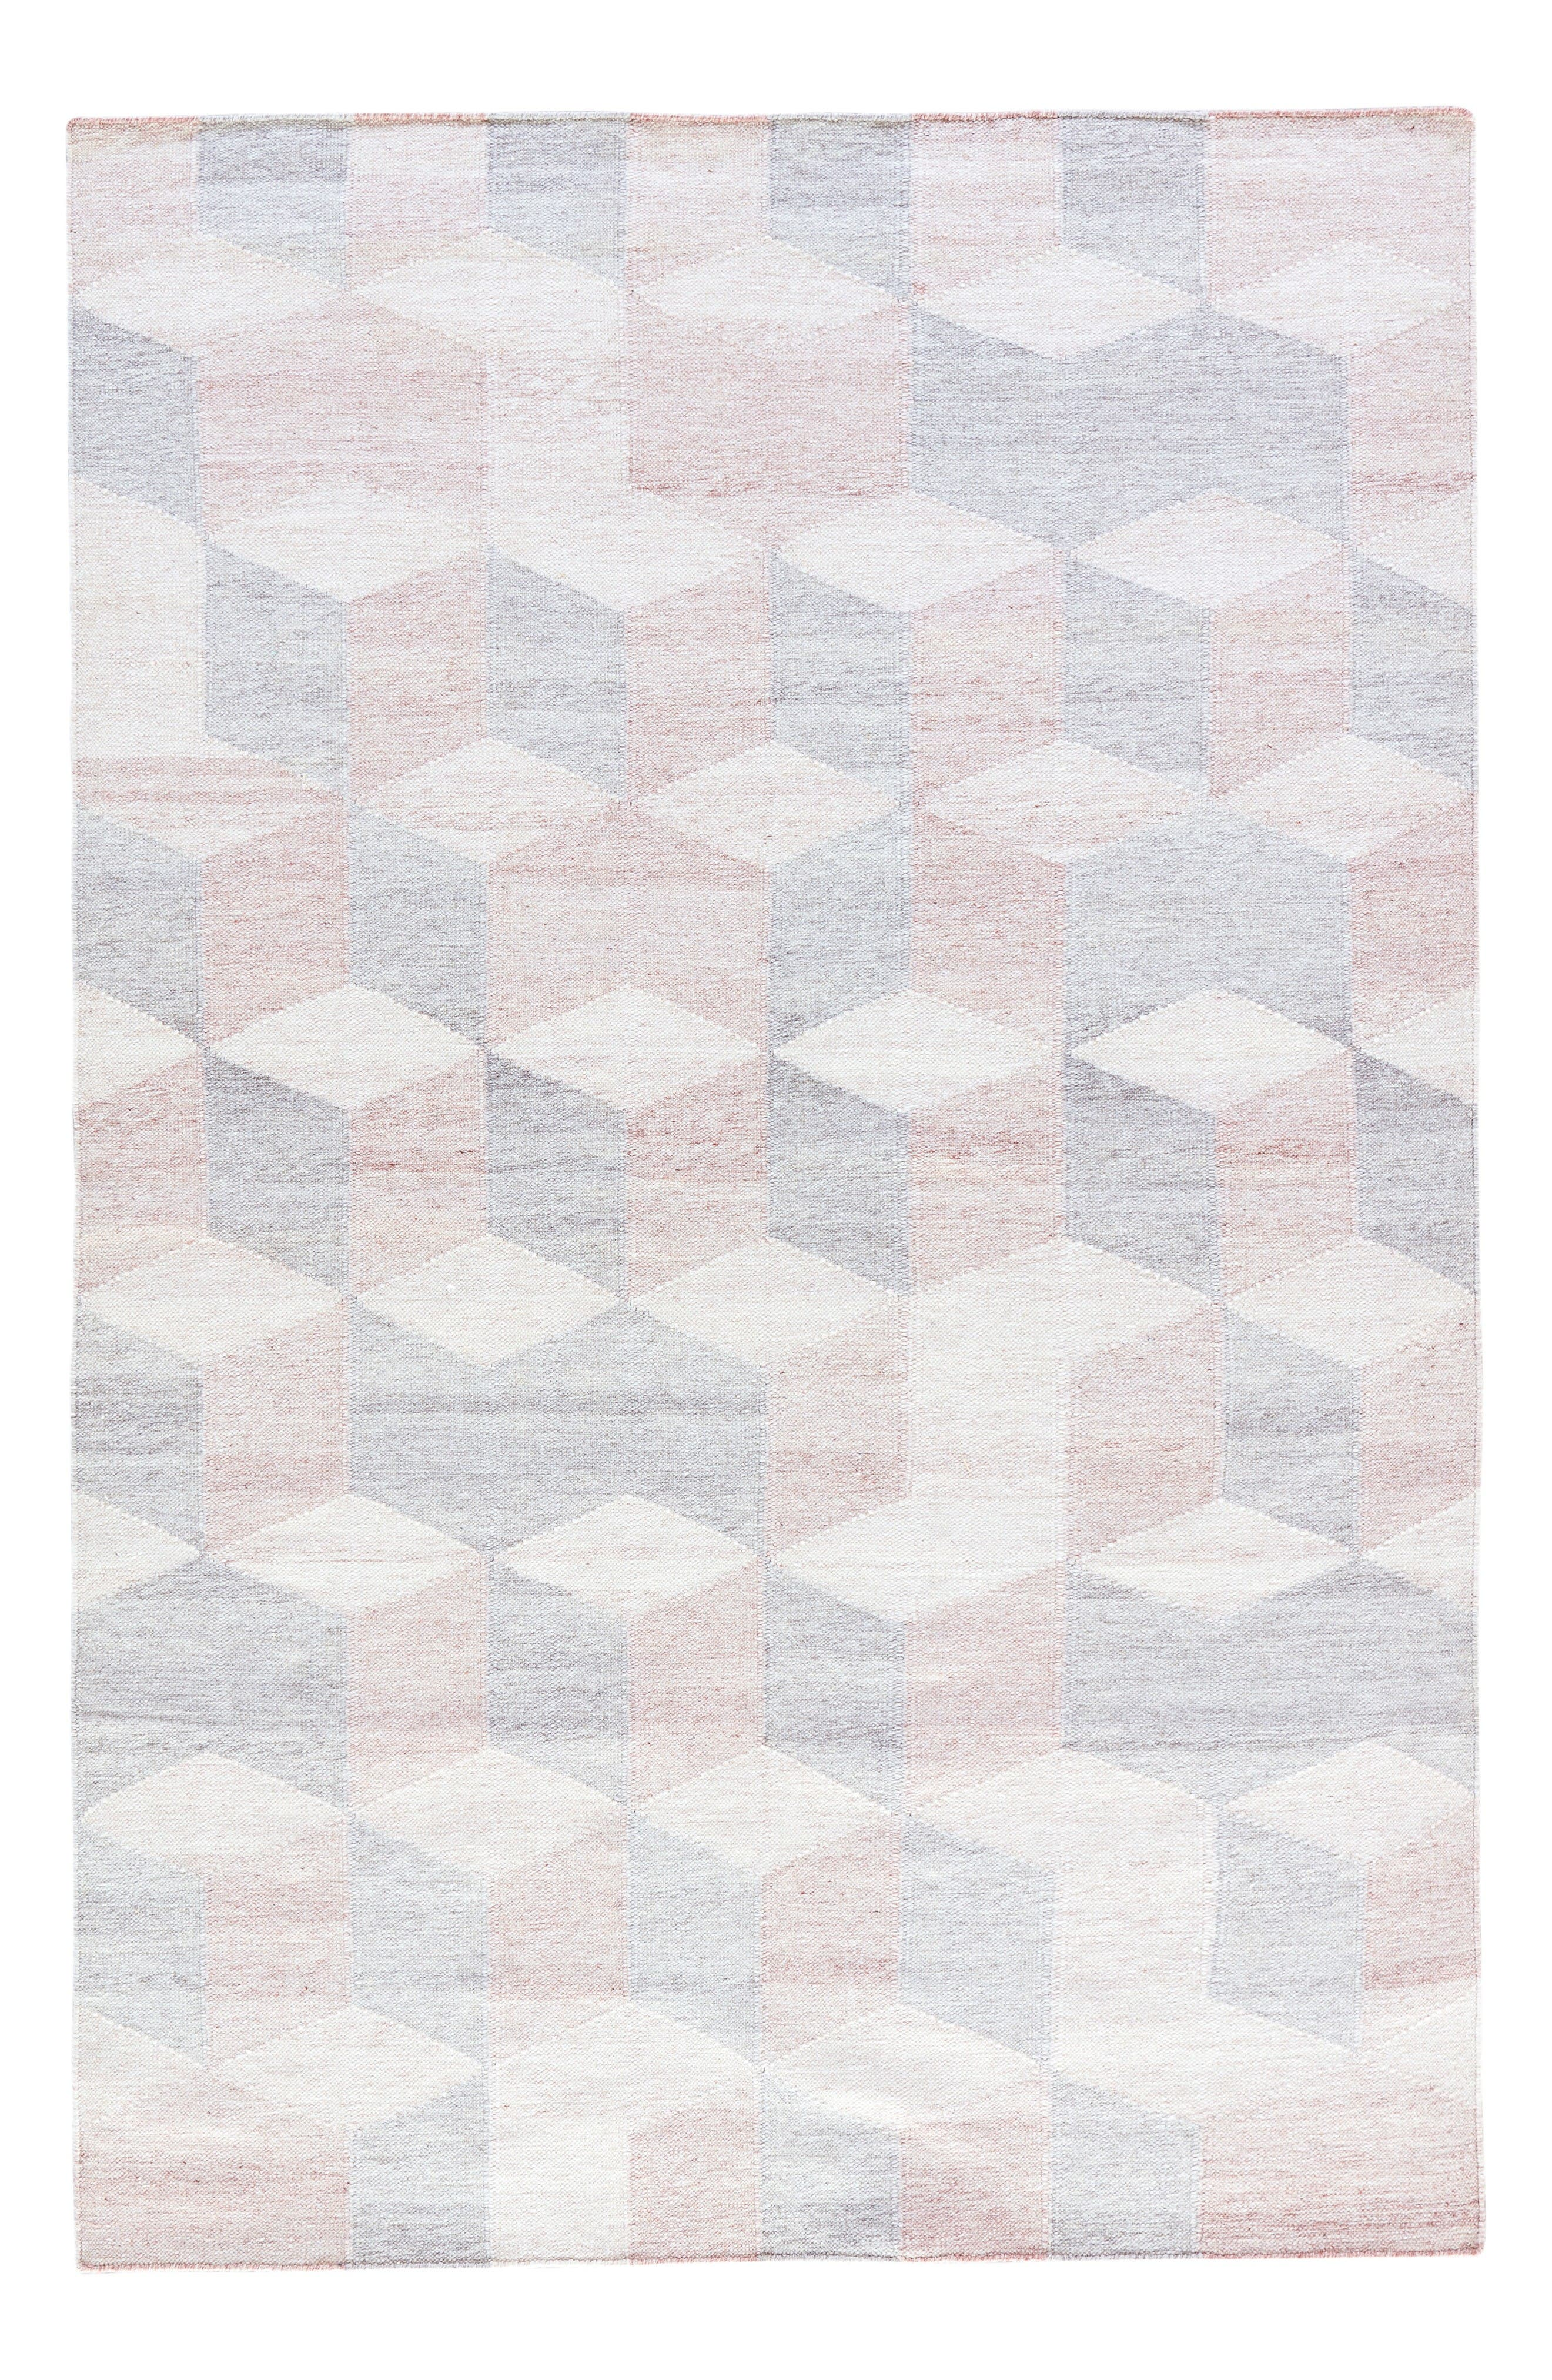 Jaipur Pyramid Blocks Rug